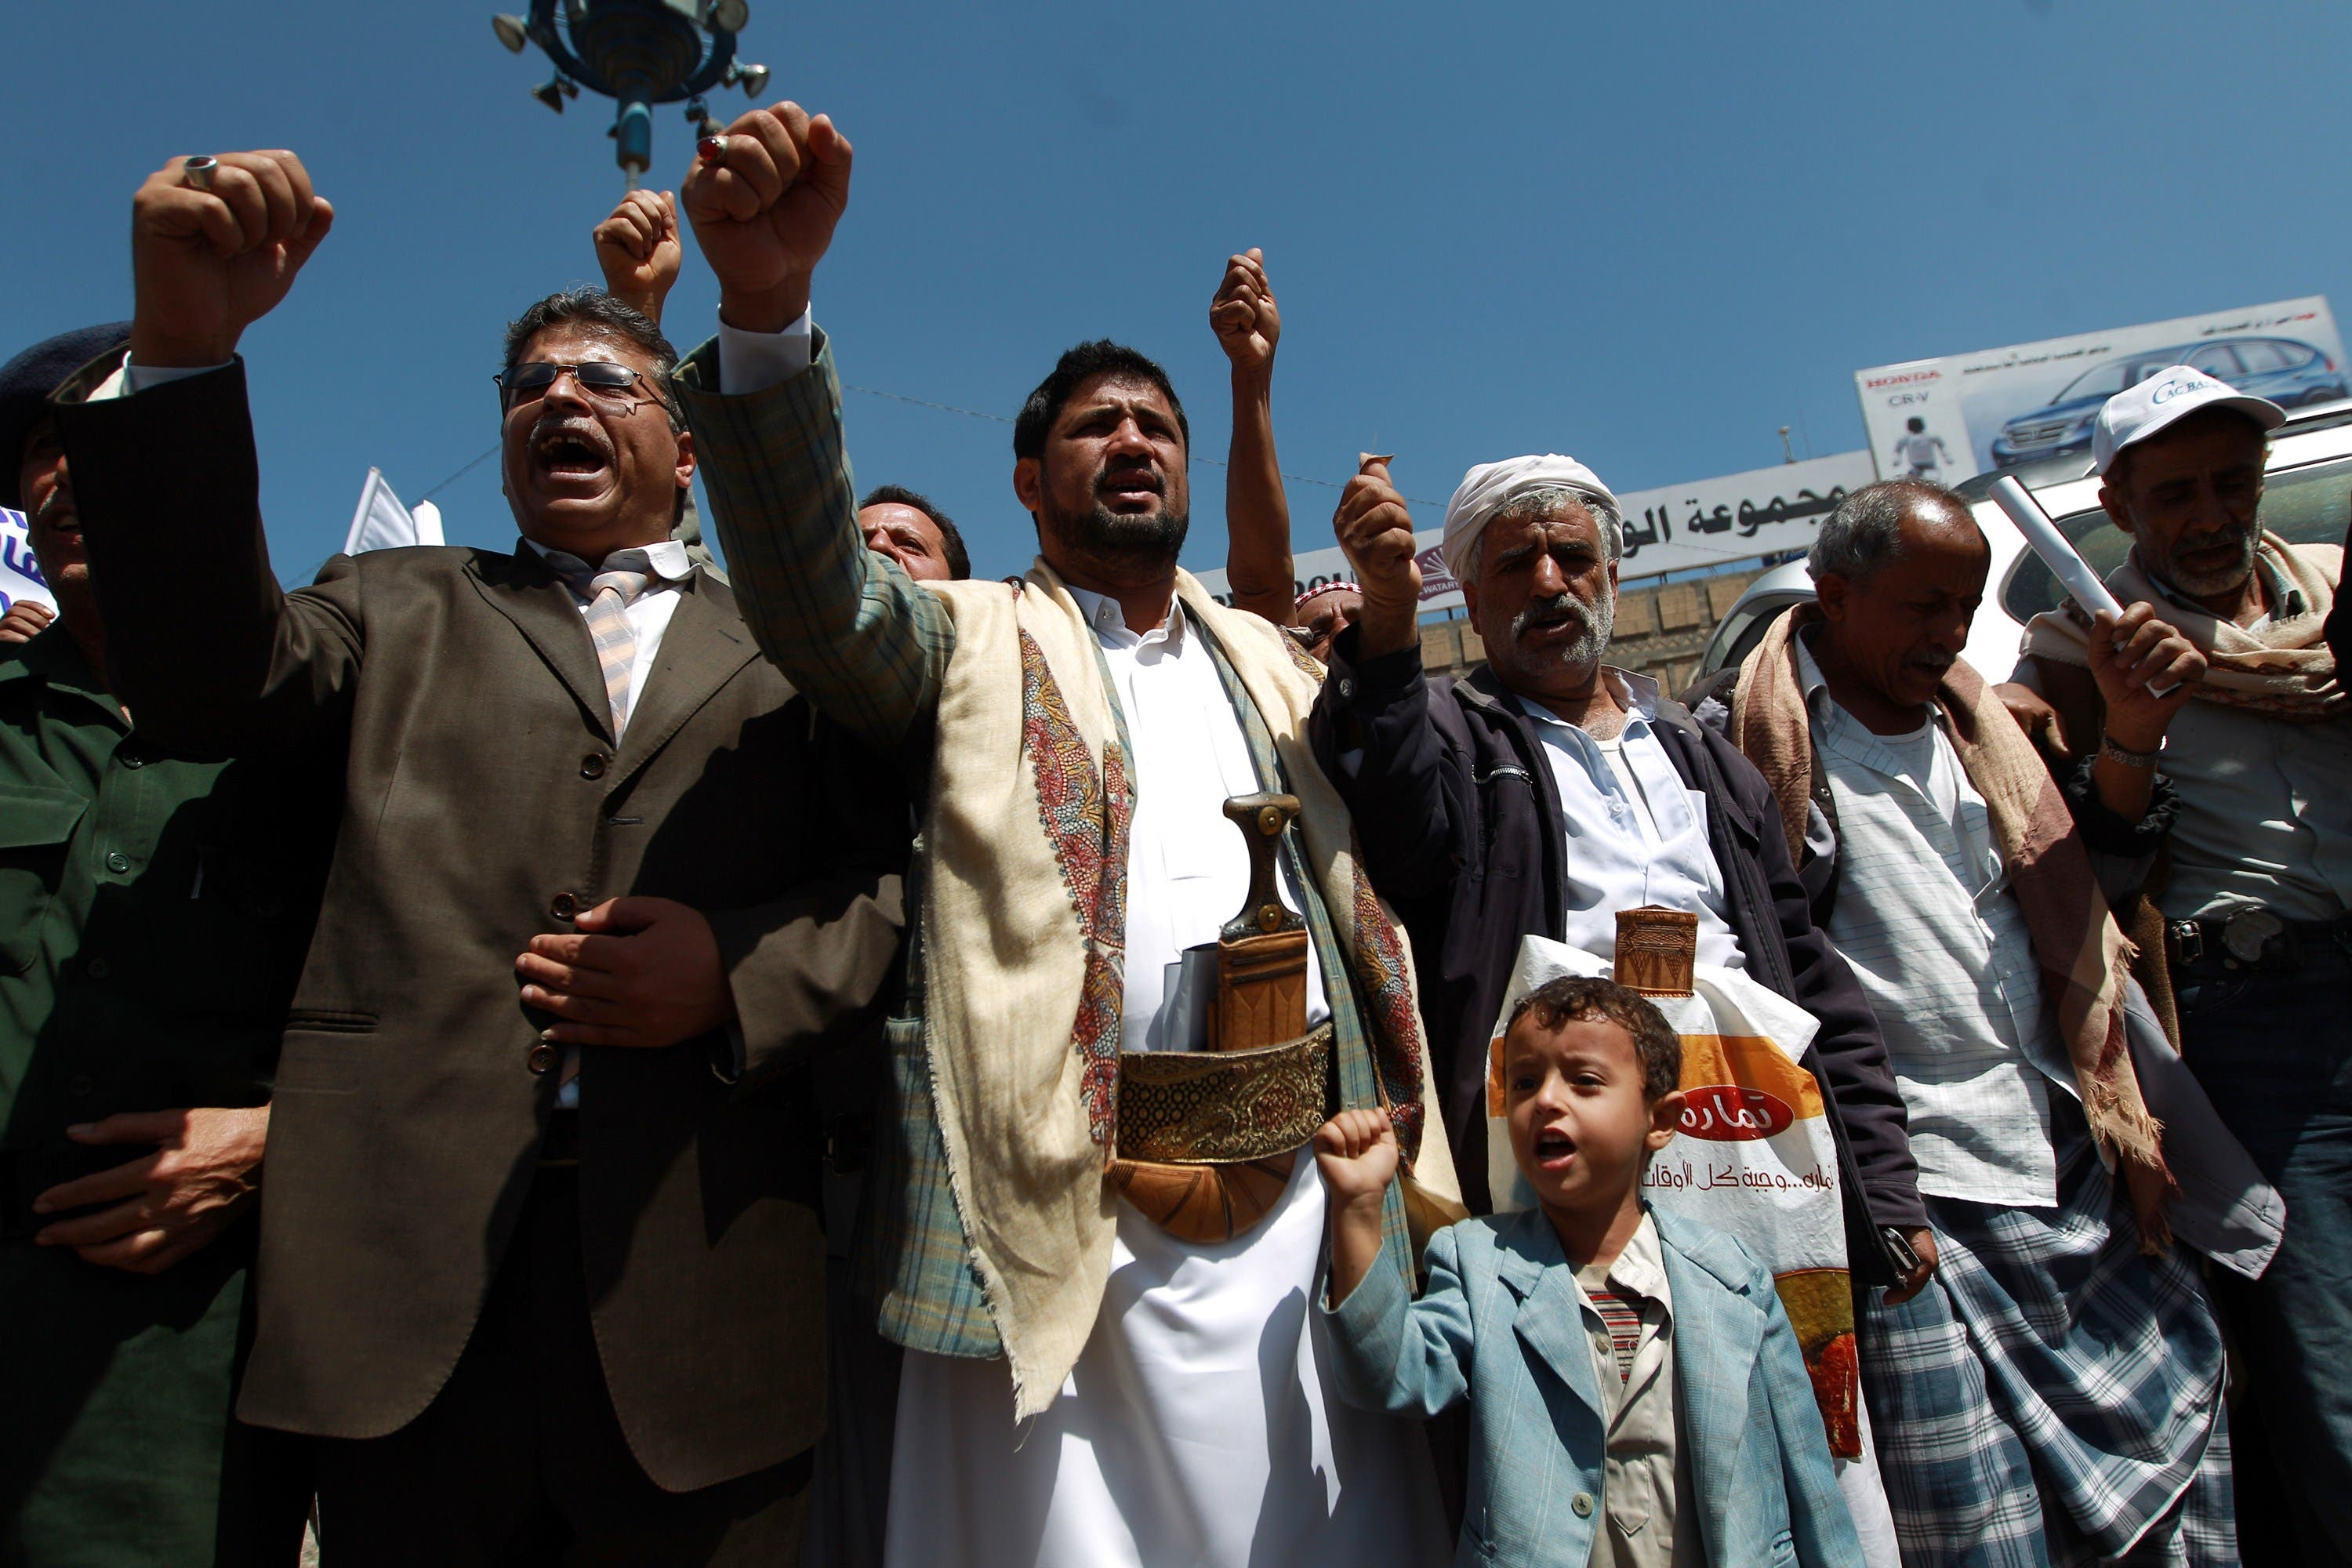 Yemen protests against the government